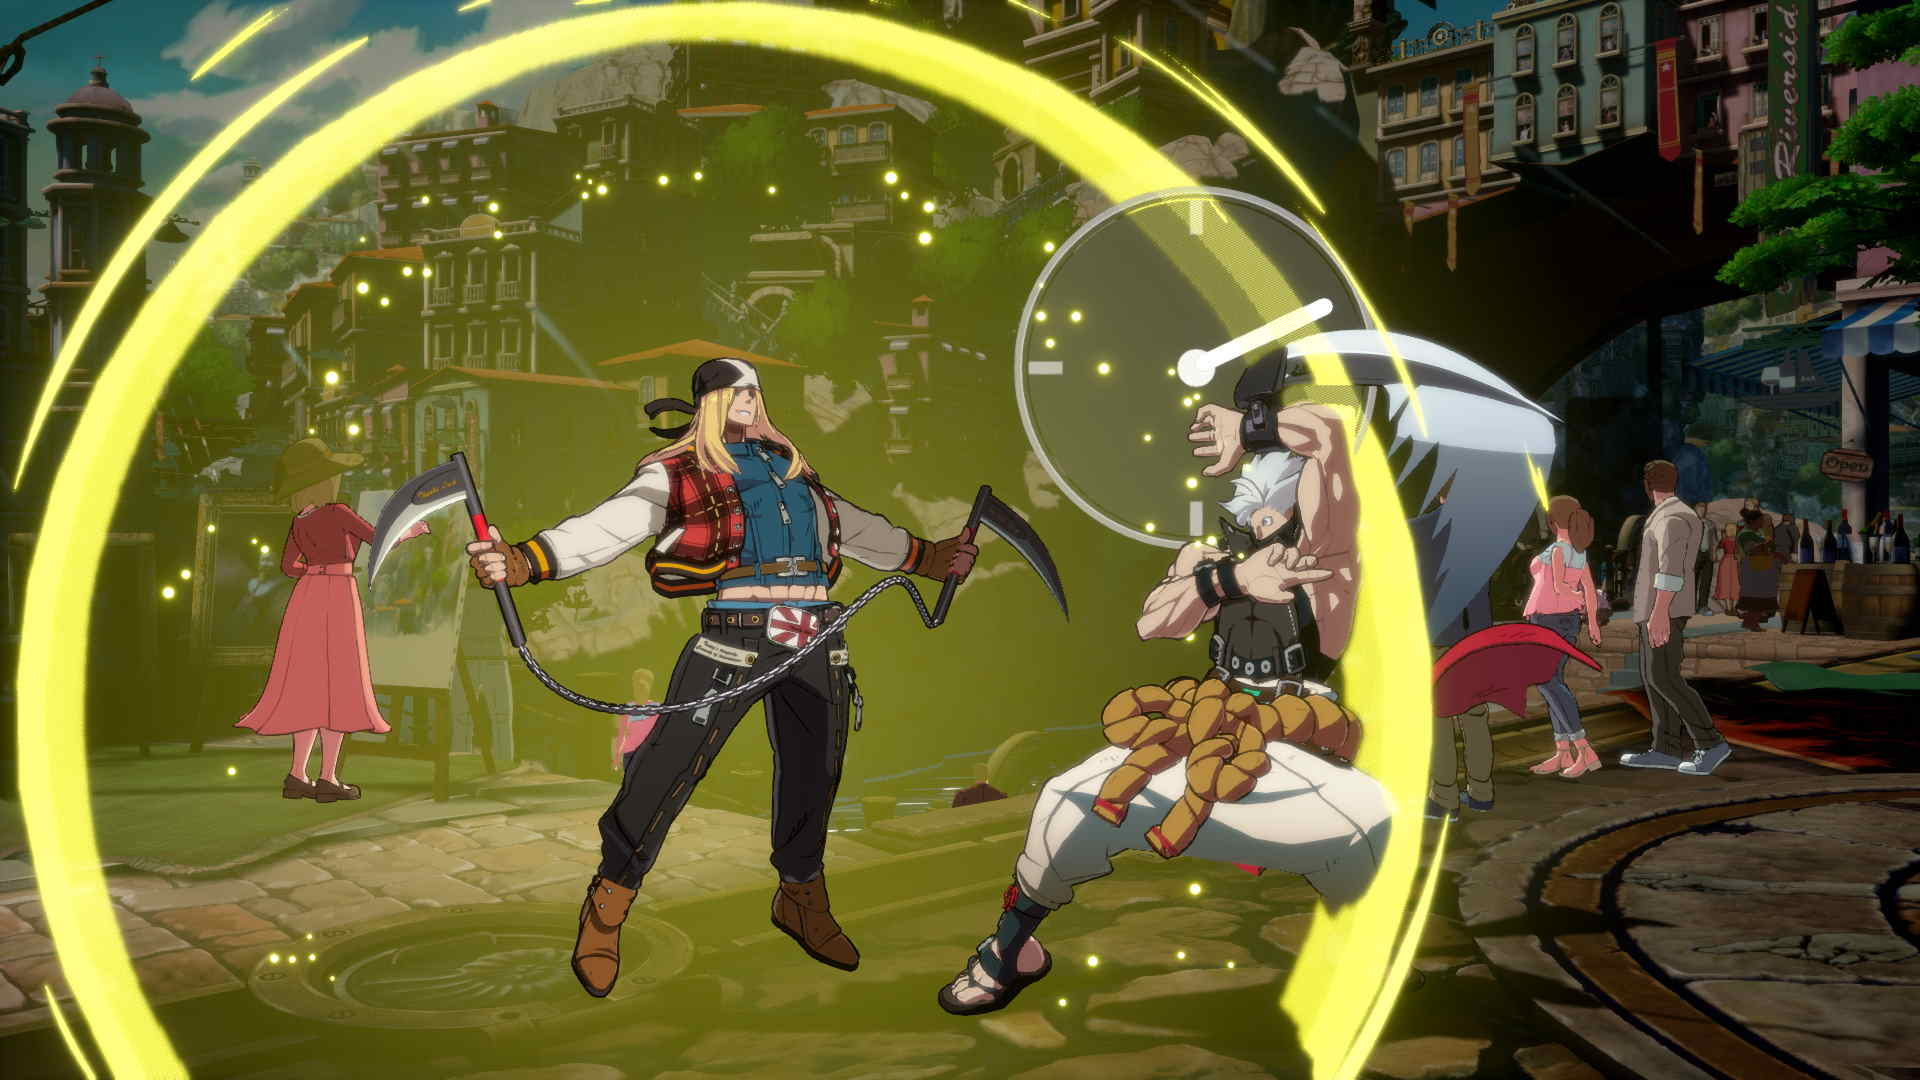 Guilty Gear Strive review: Slower than usual